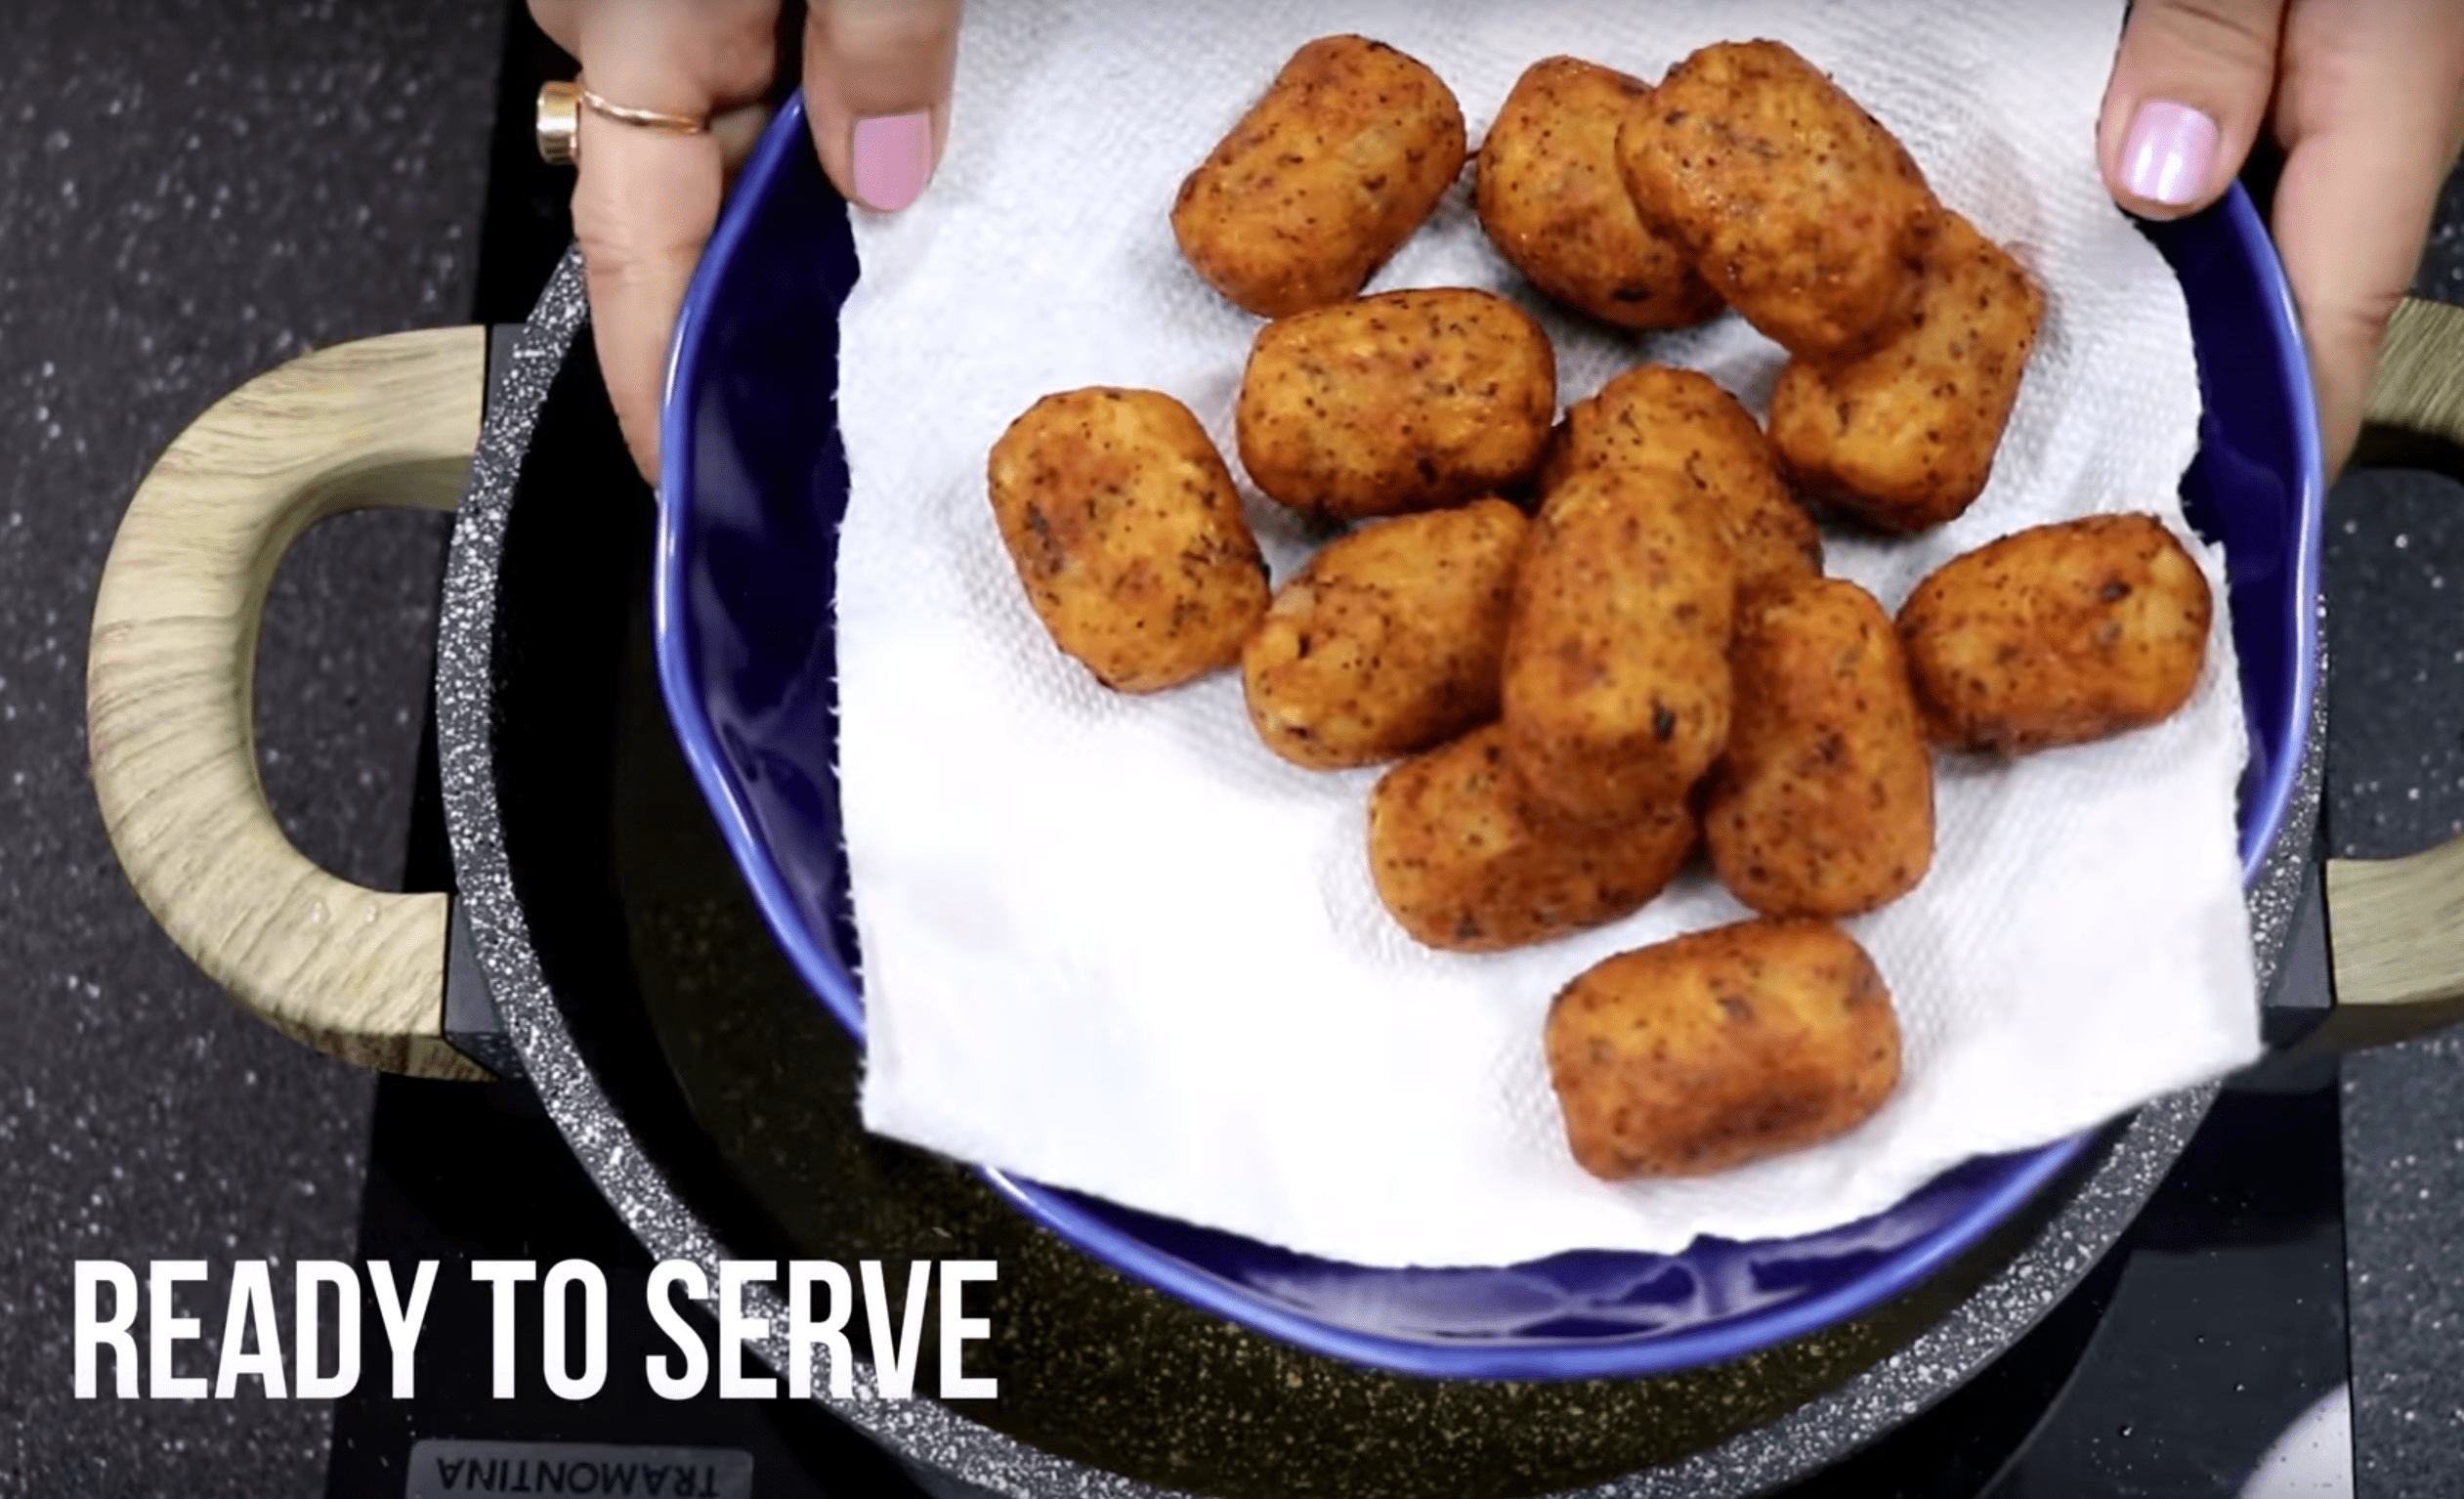 Ready to serve the perfect tater tots